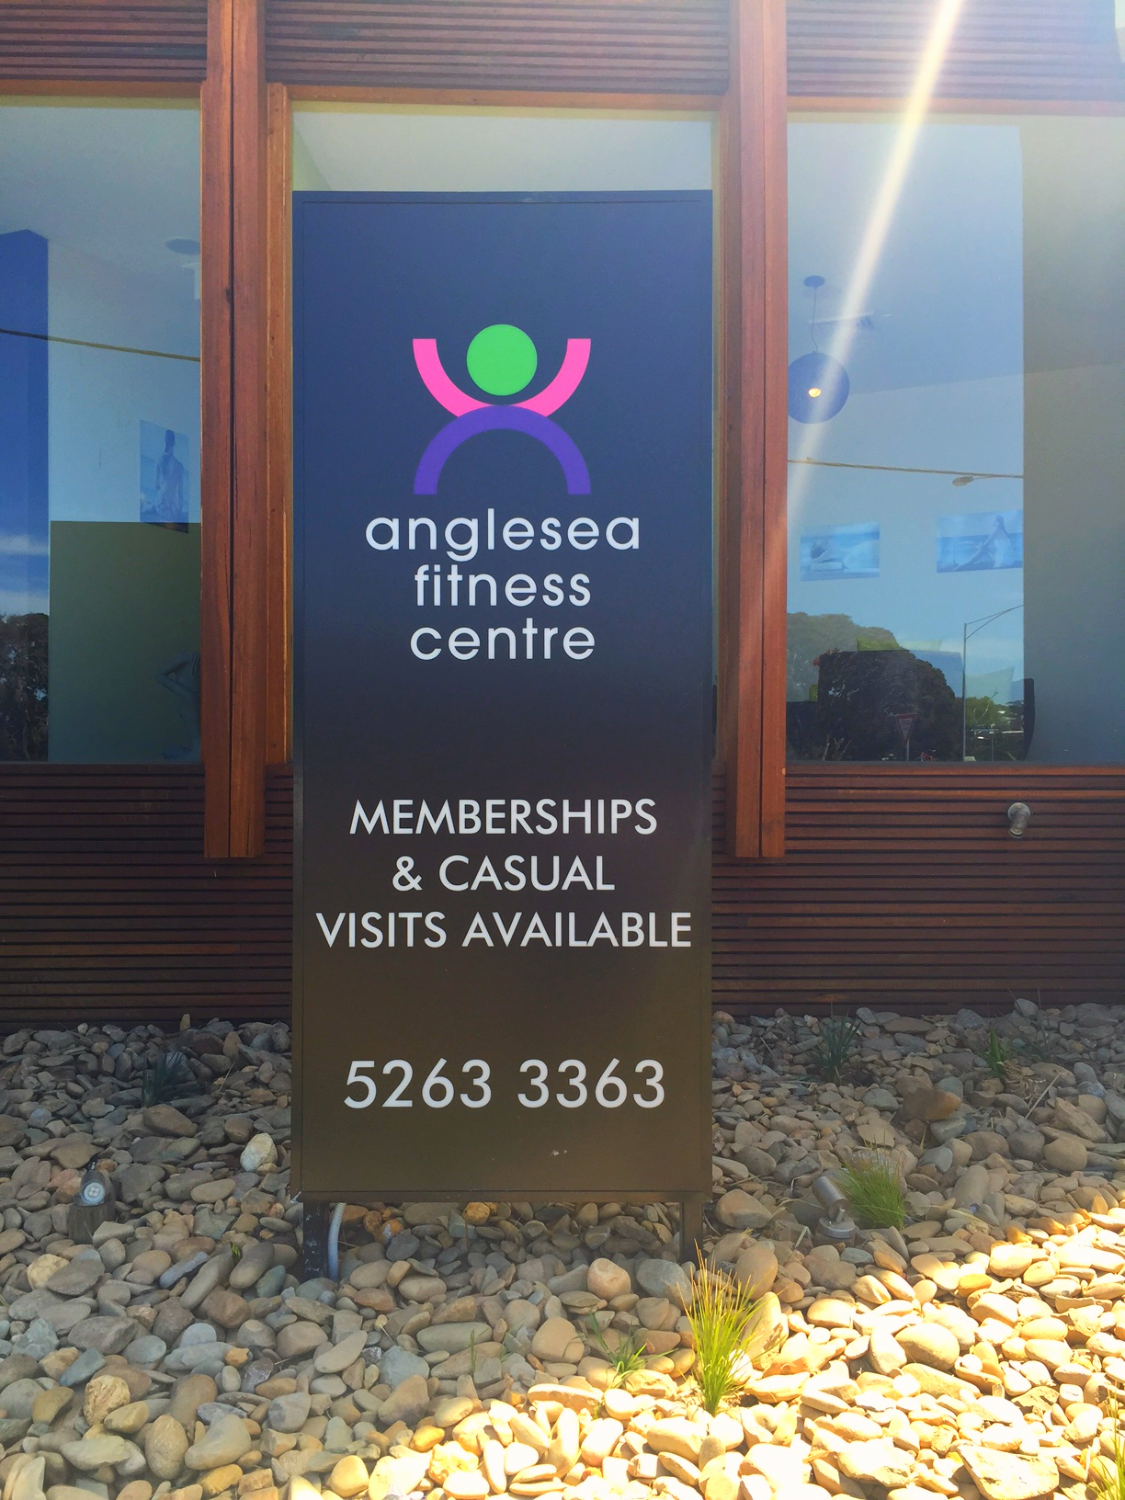 Anglesea Fitness Centre